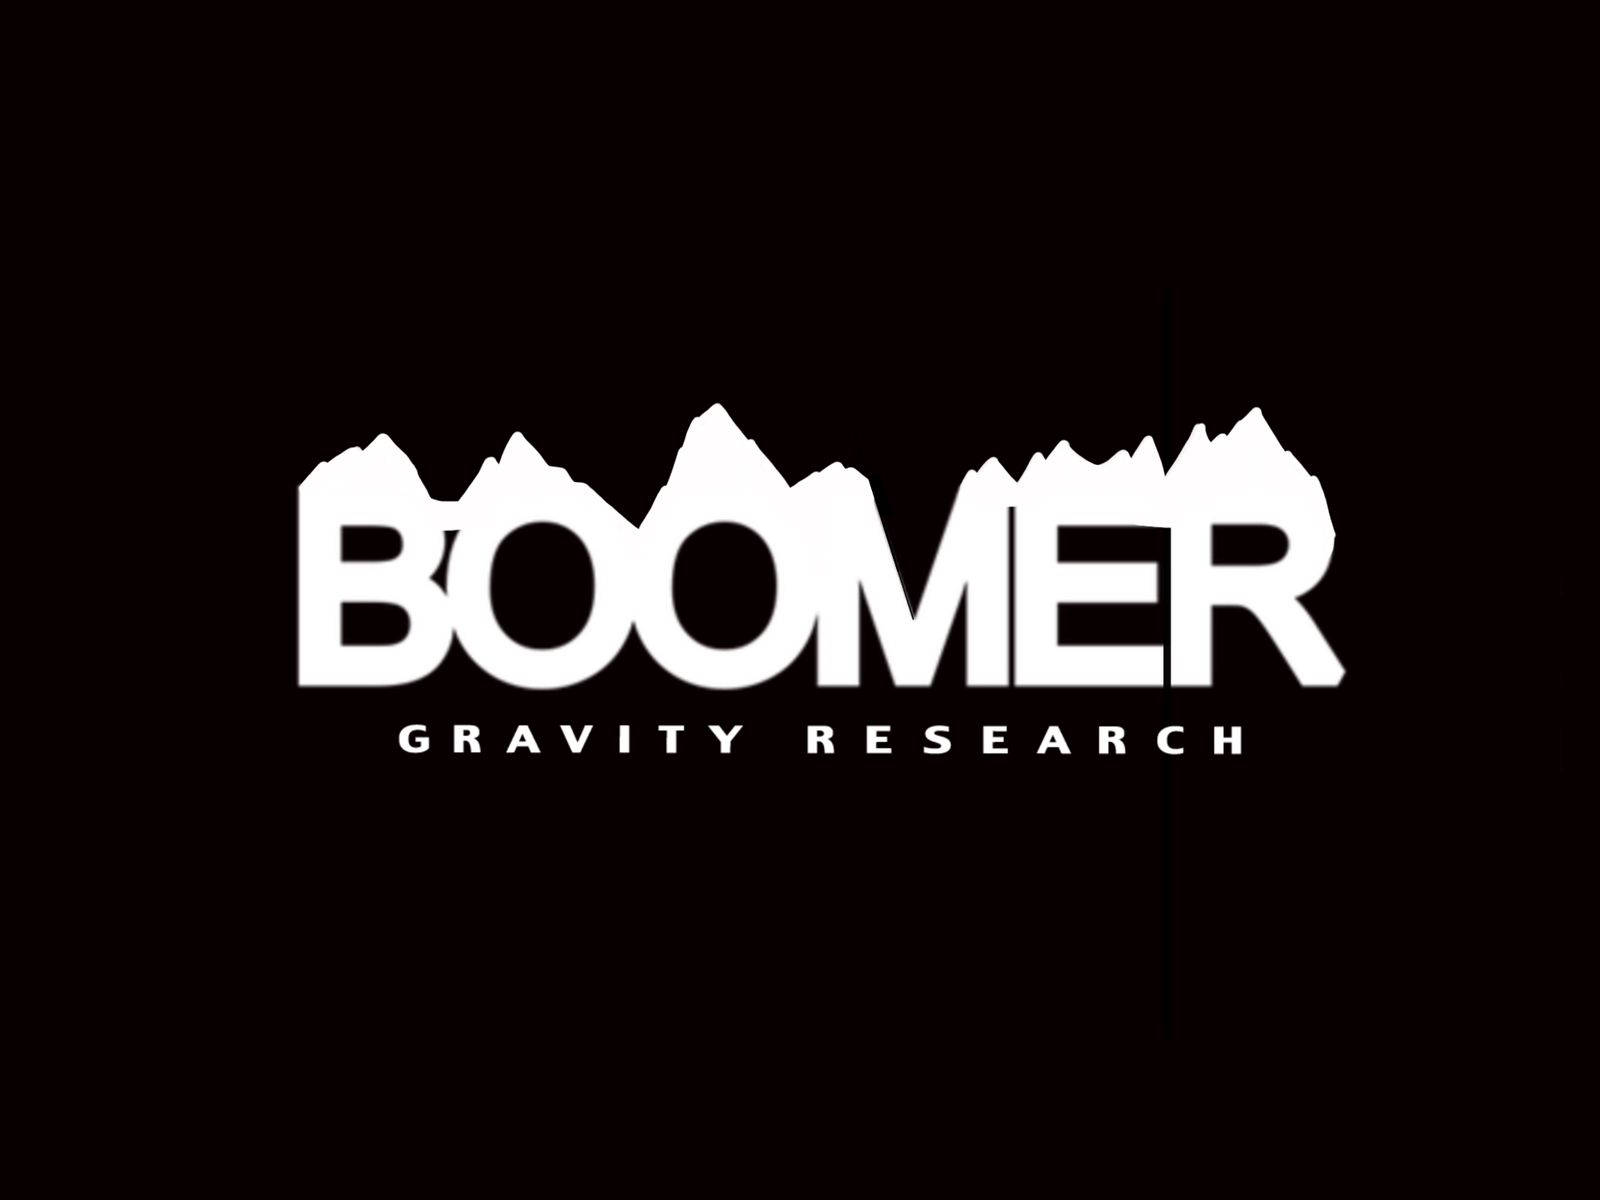 Made a boomer gravity research sticker